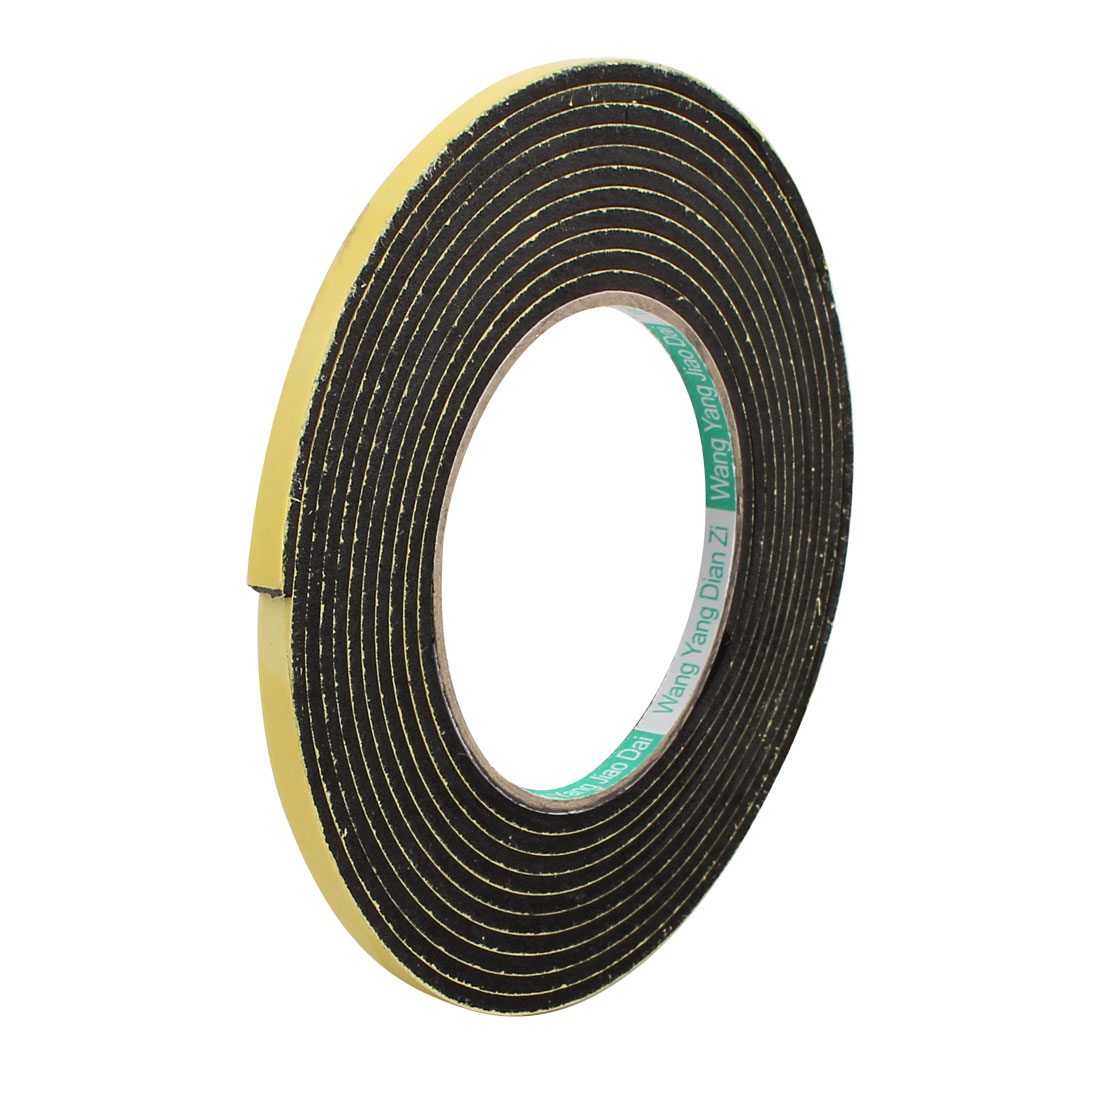 5mm Width 2mm Thick Single Sided Sealing Shockproof Sponge Tape 5m Length